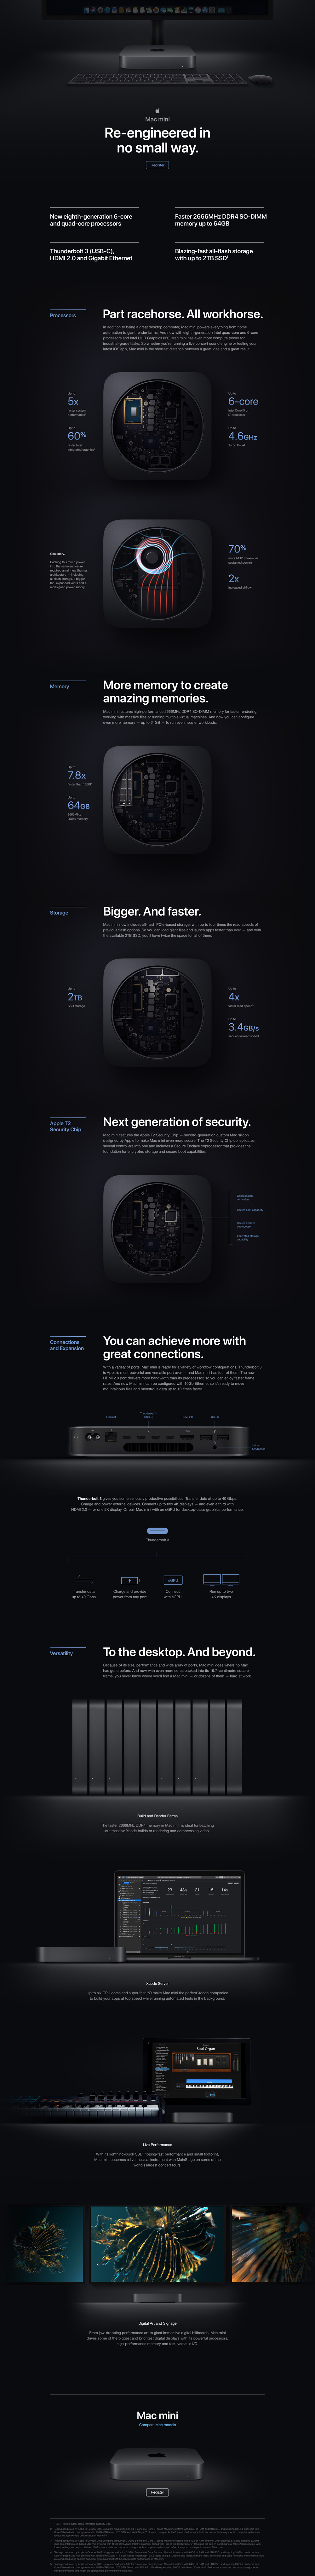 Product Page Mac mini